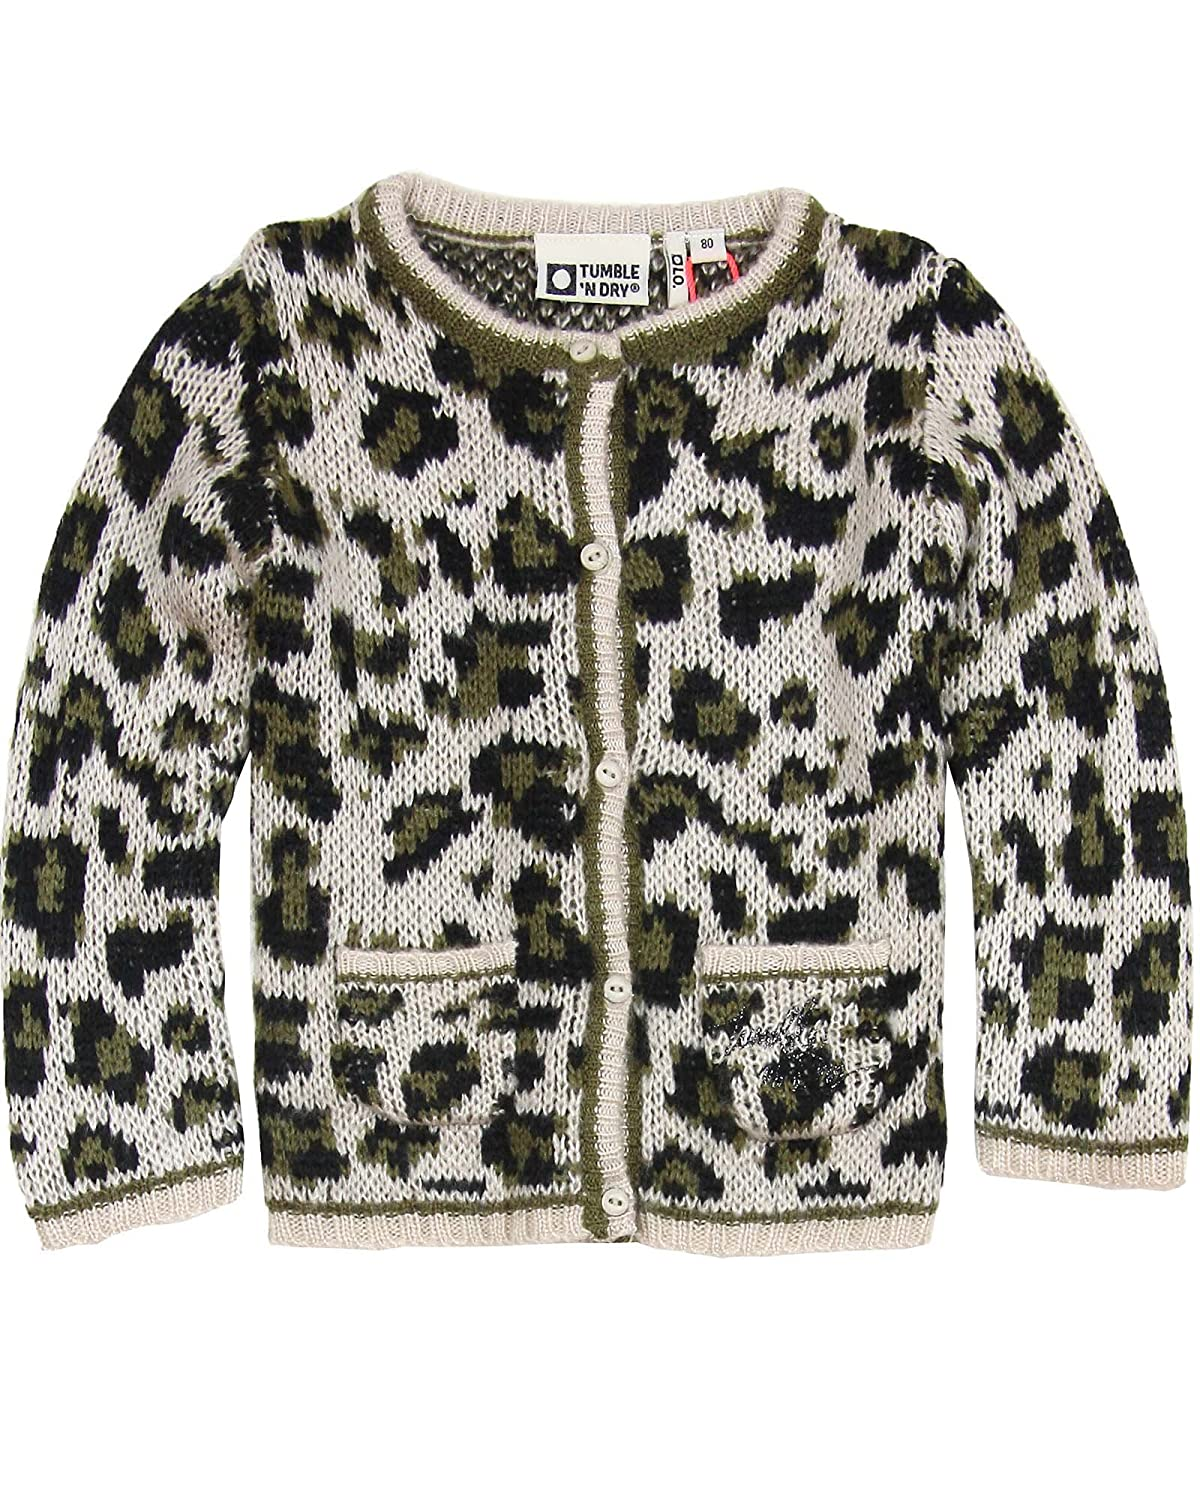 Sizes 18M-2 Tumble n Dry Baby Girls Knit Cardigan Pennville